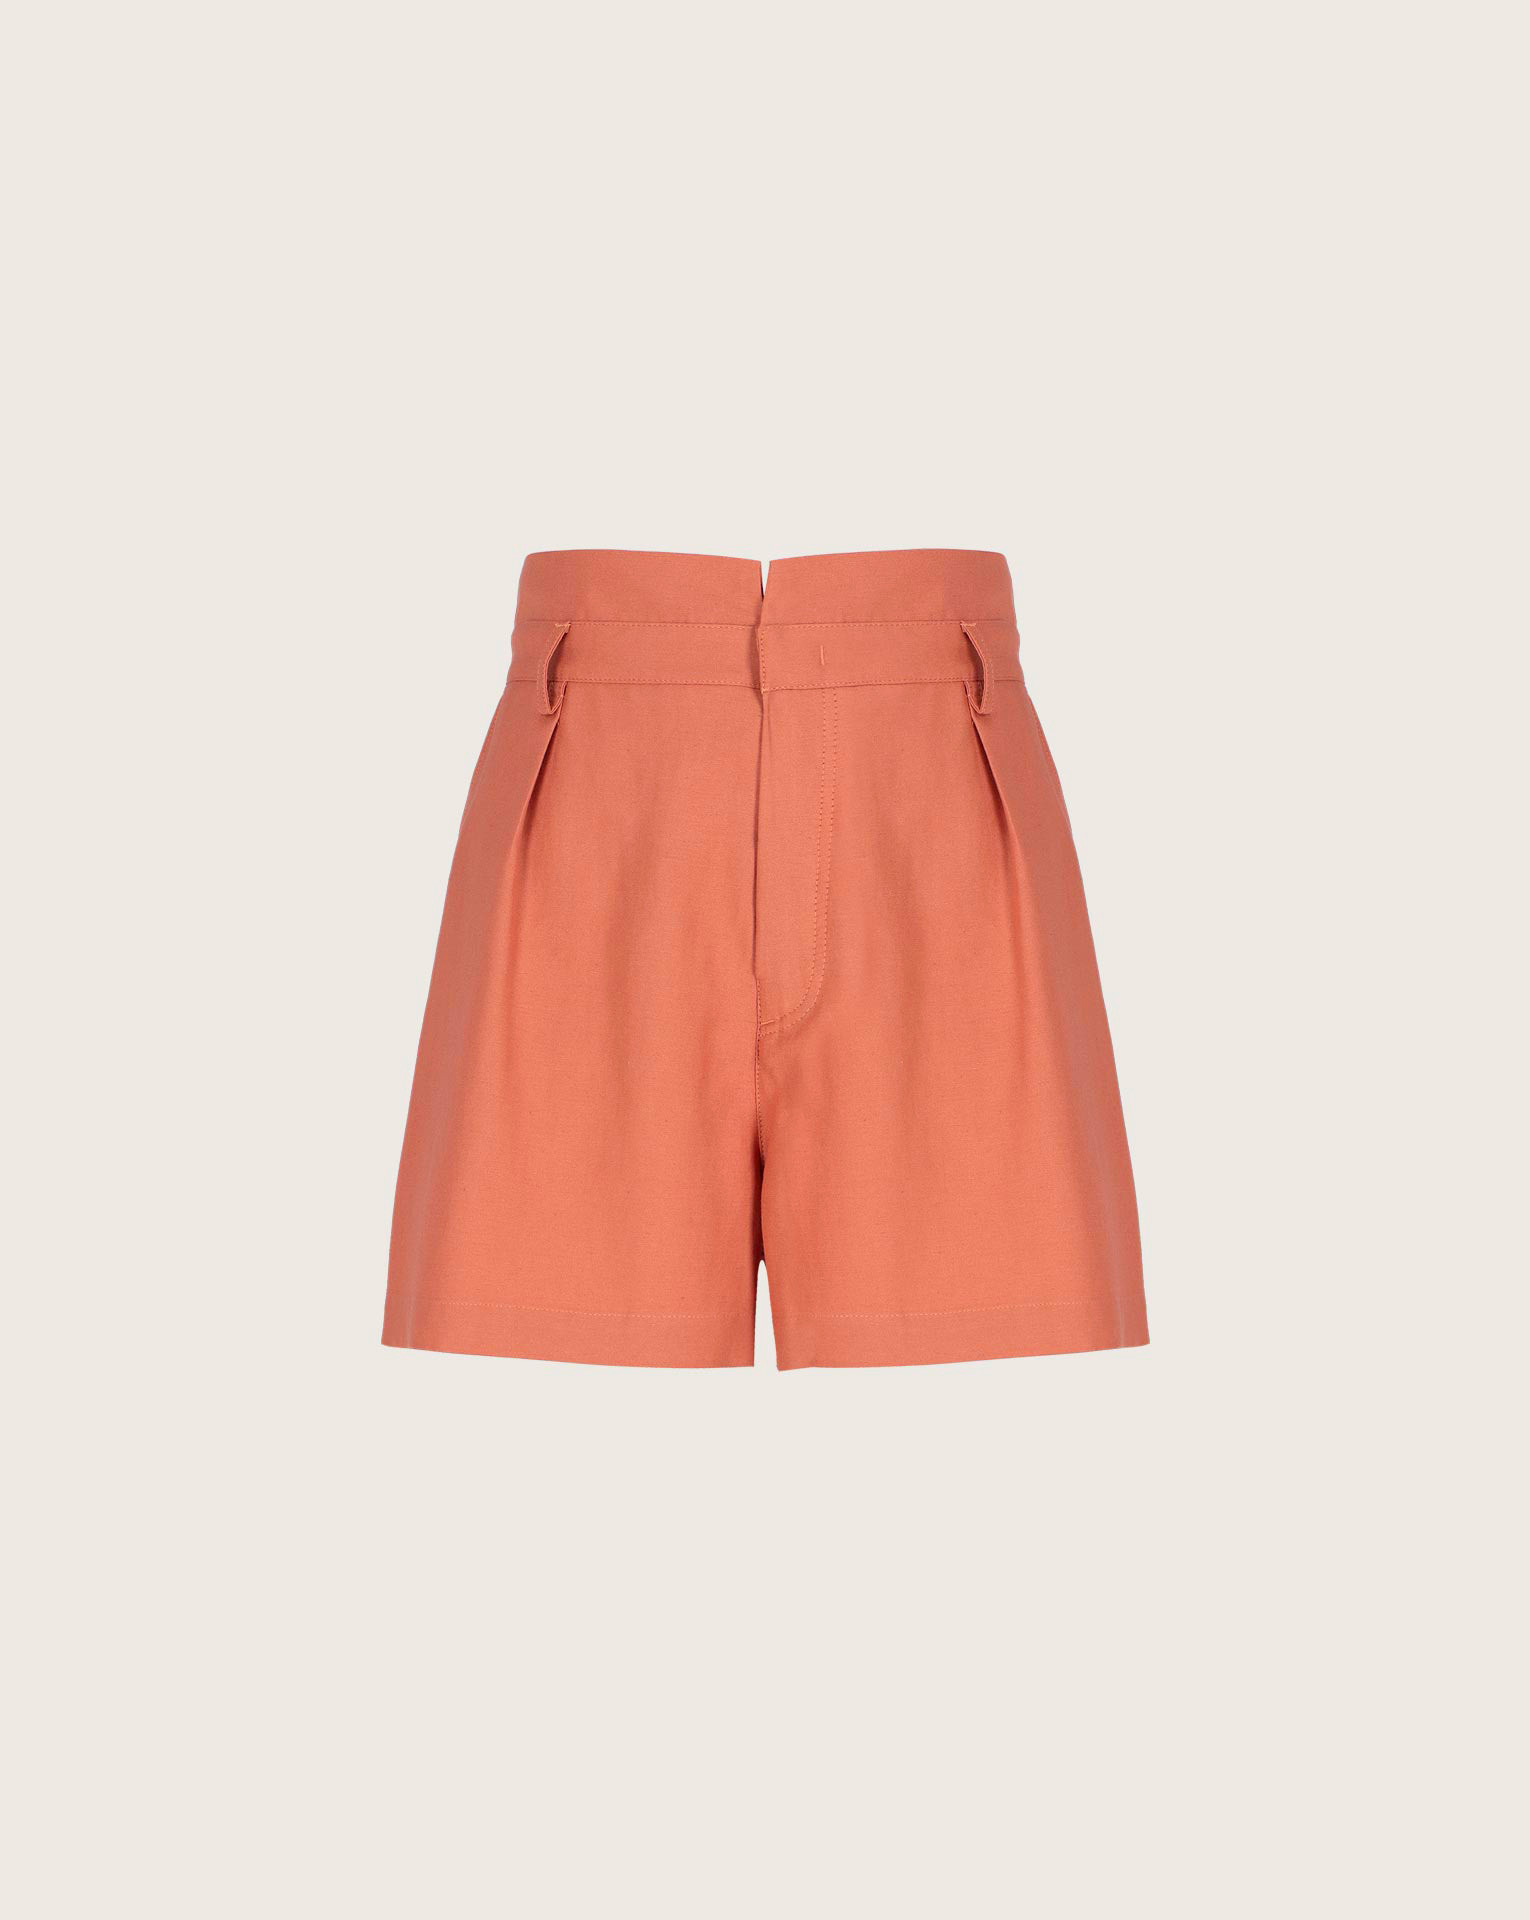 Shorts in shantung Ginger, Marrone, large image number 0